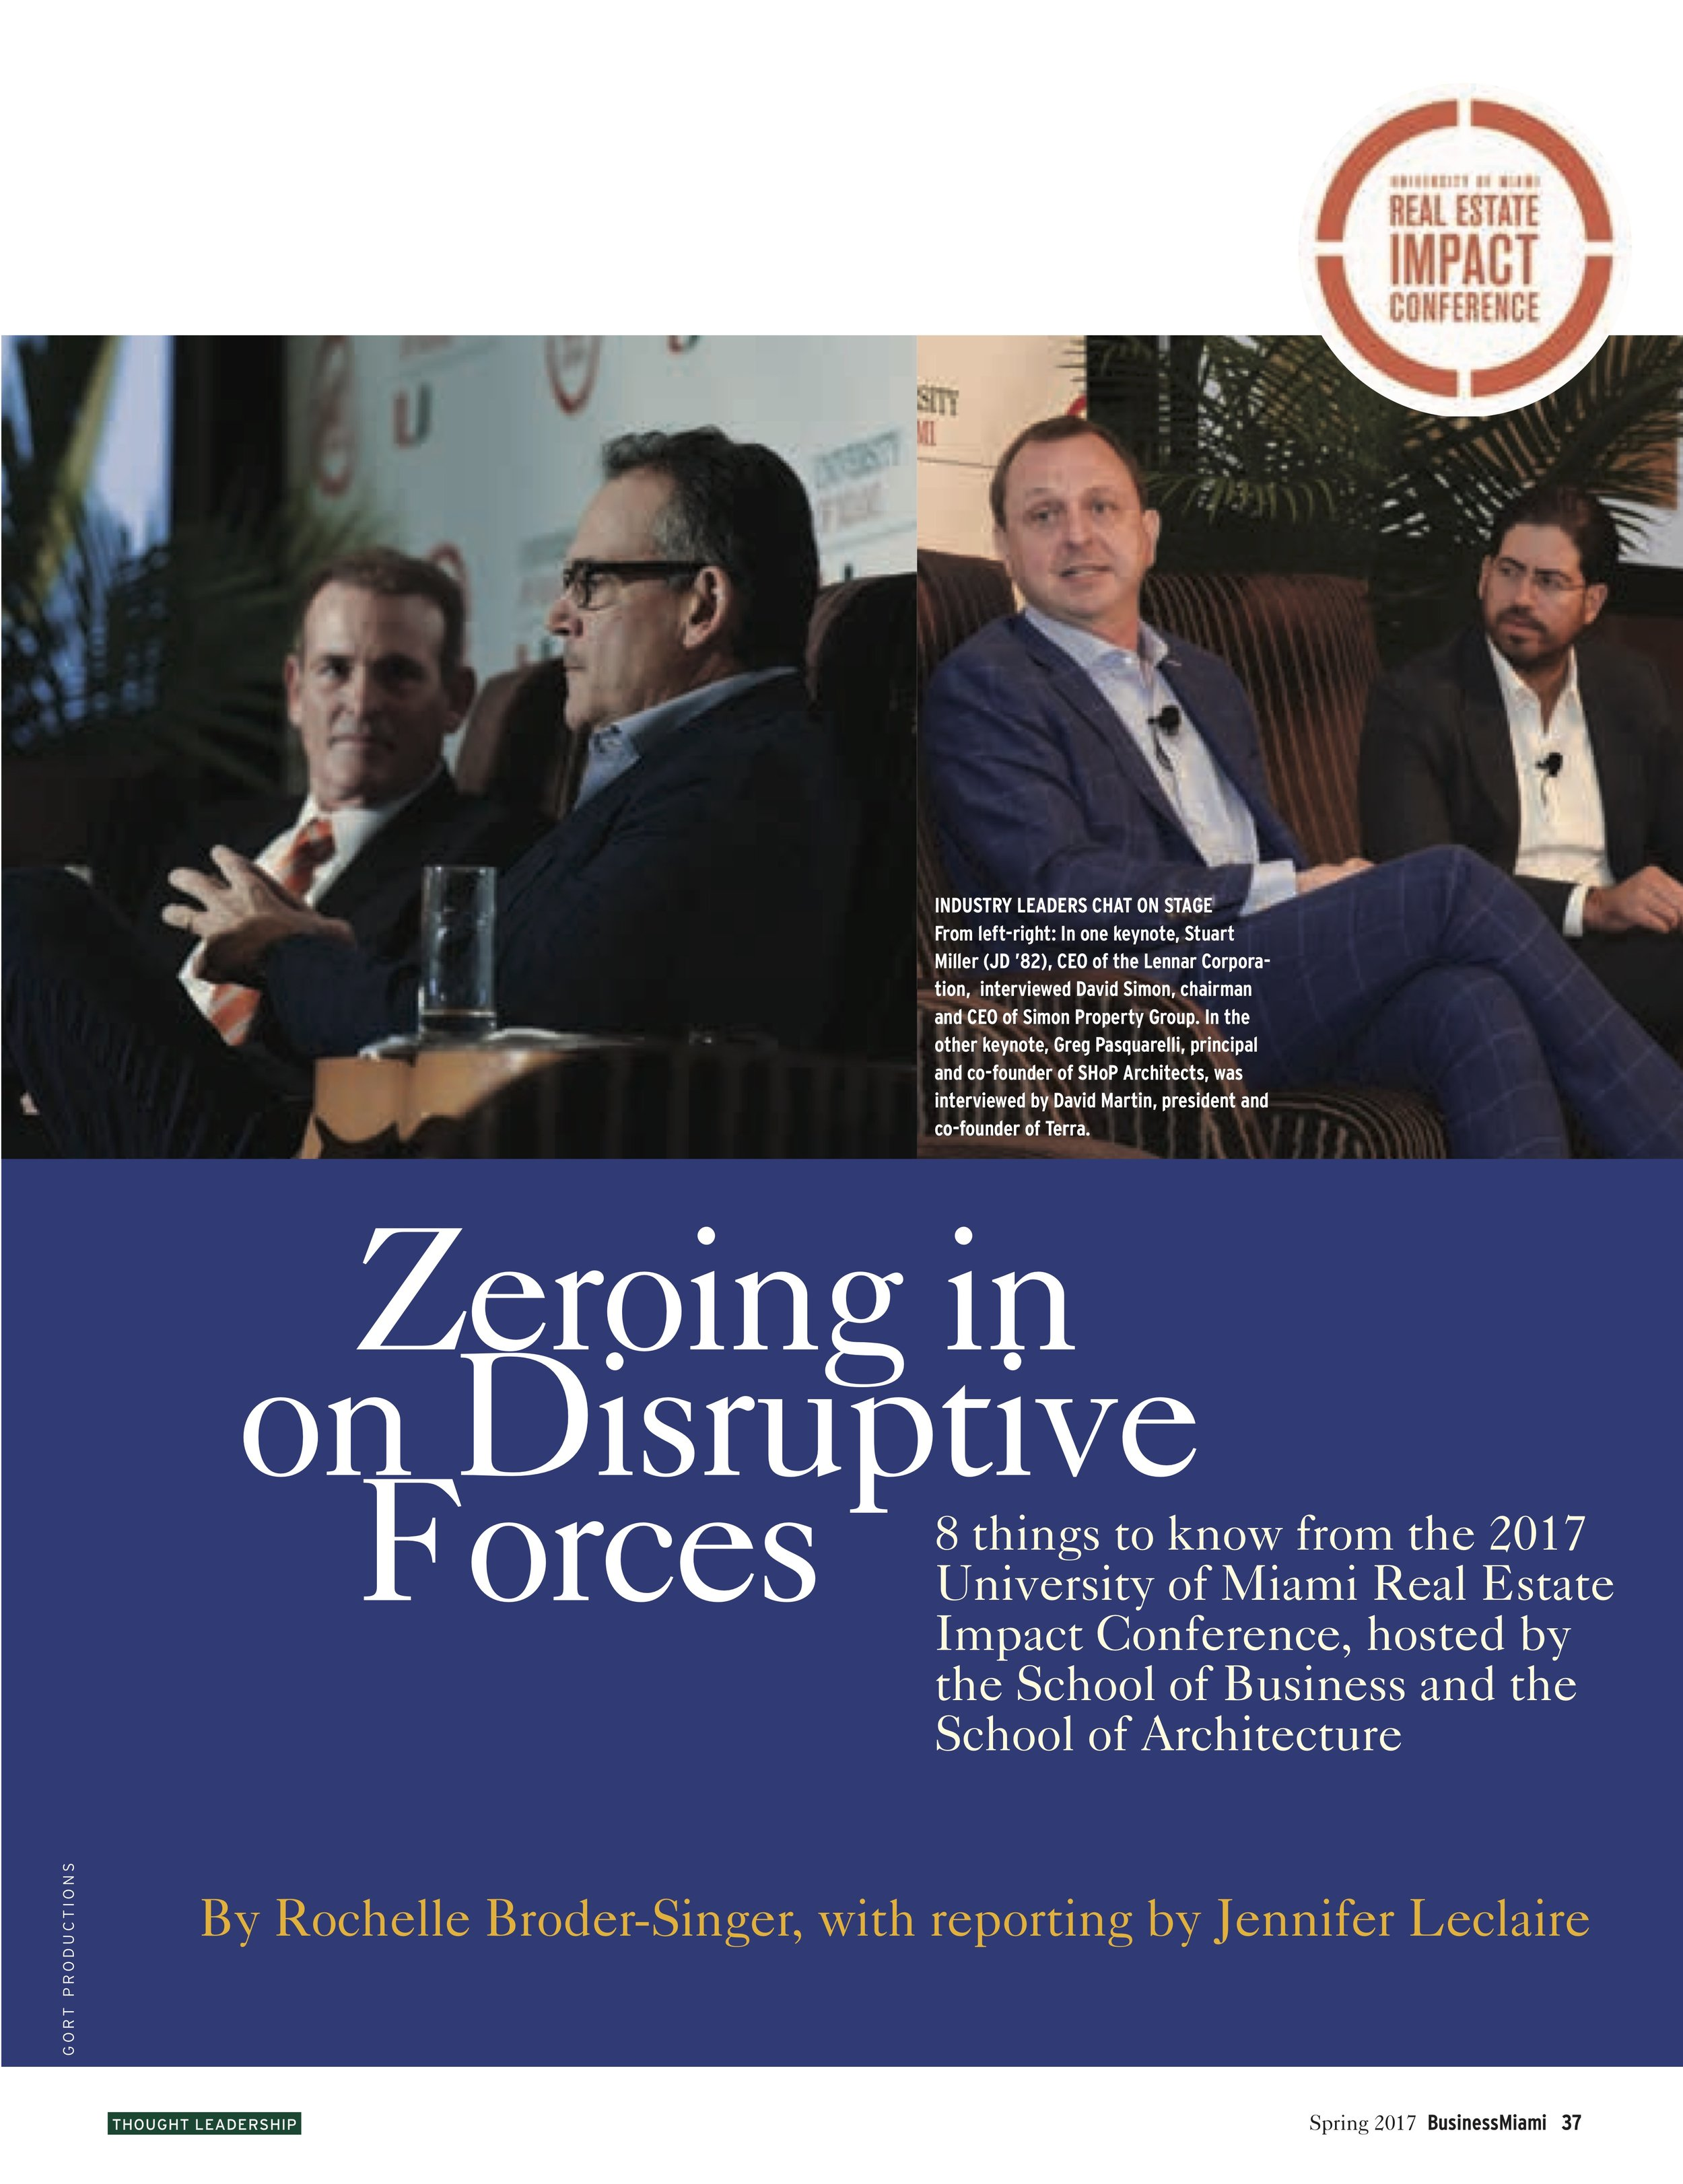 2017 Real Estate Impact Conference -